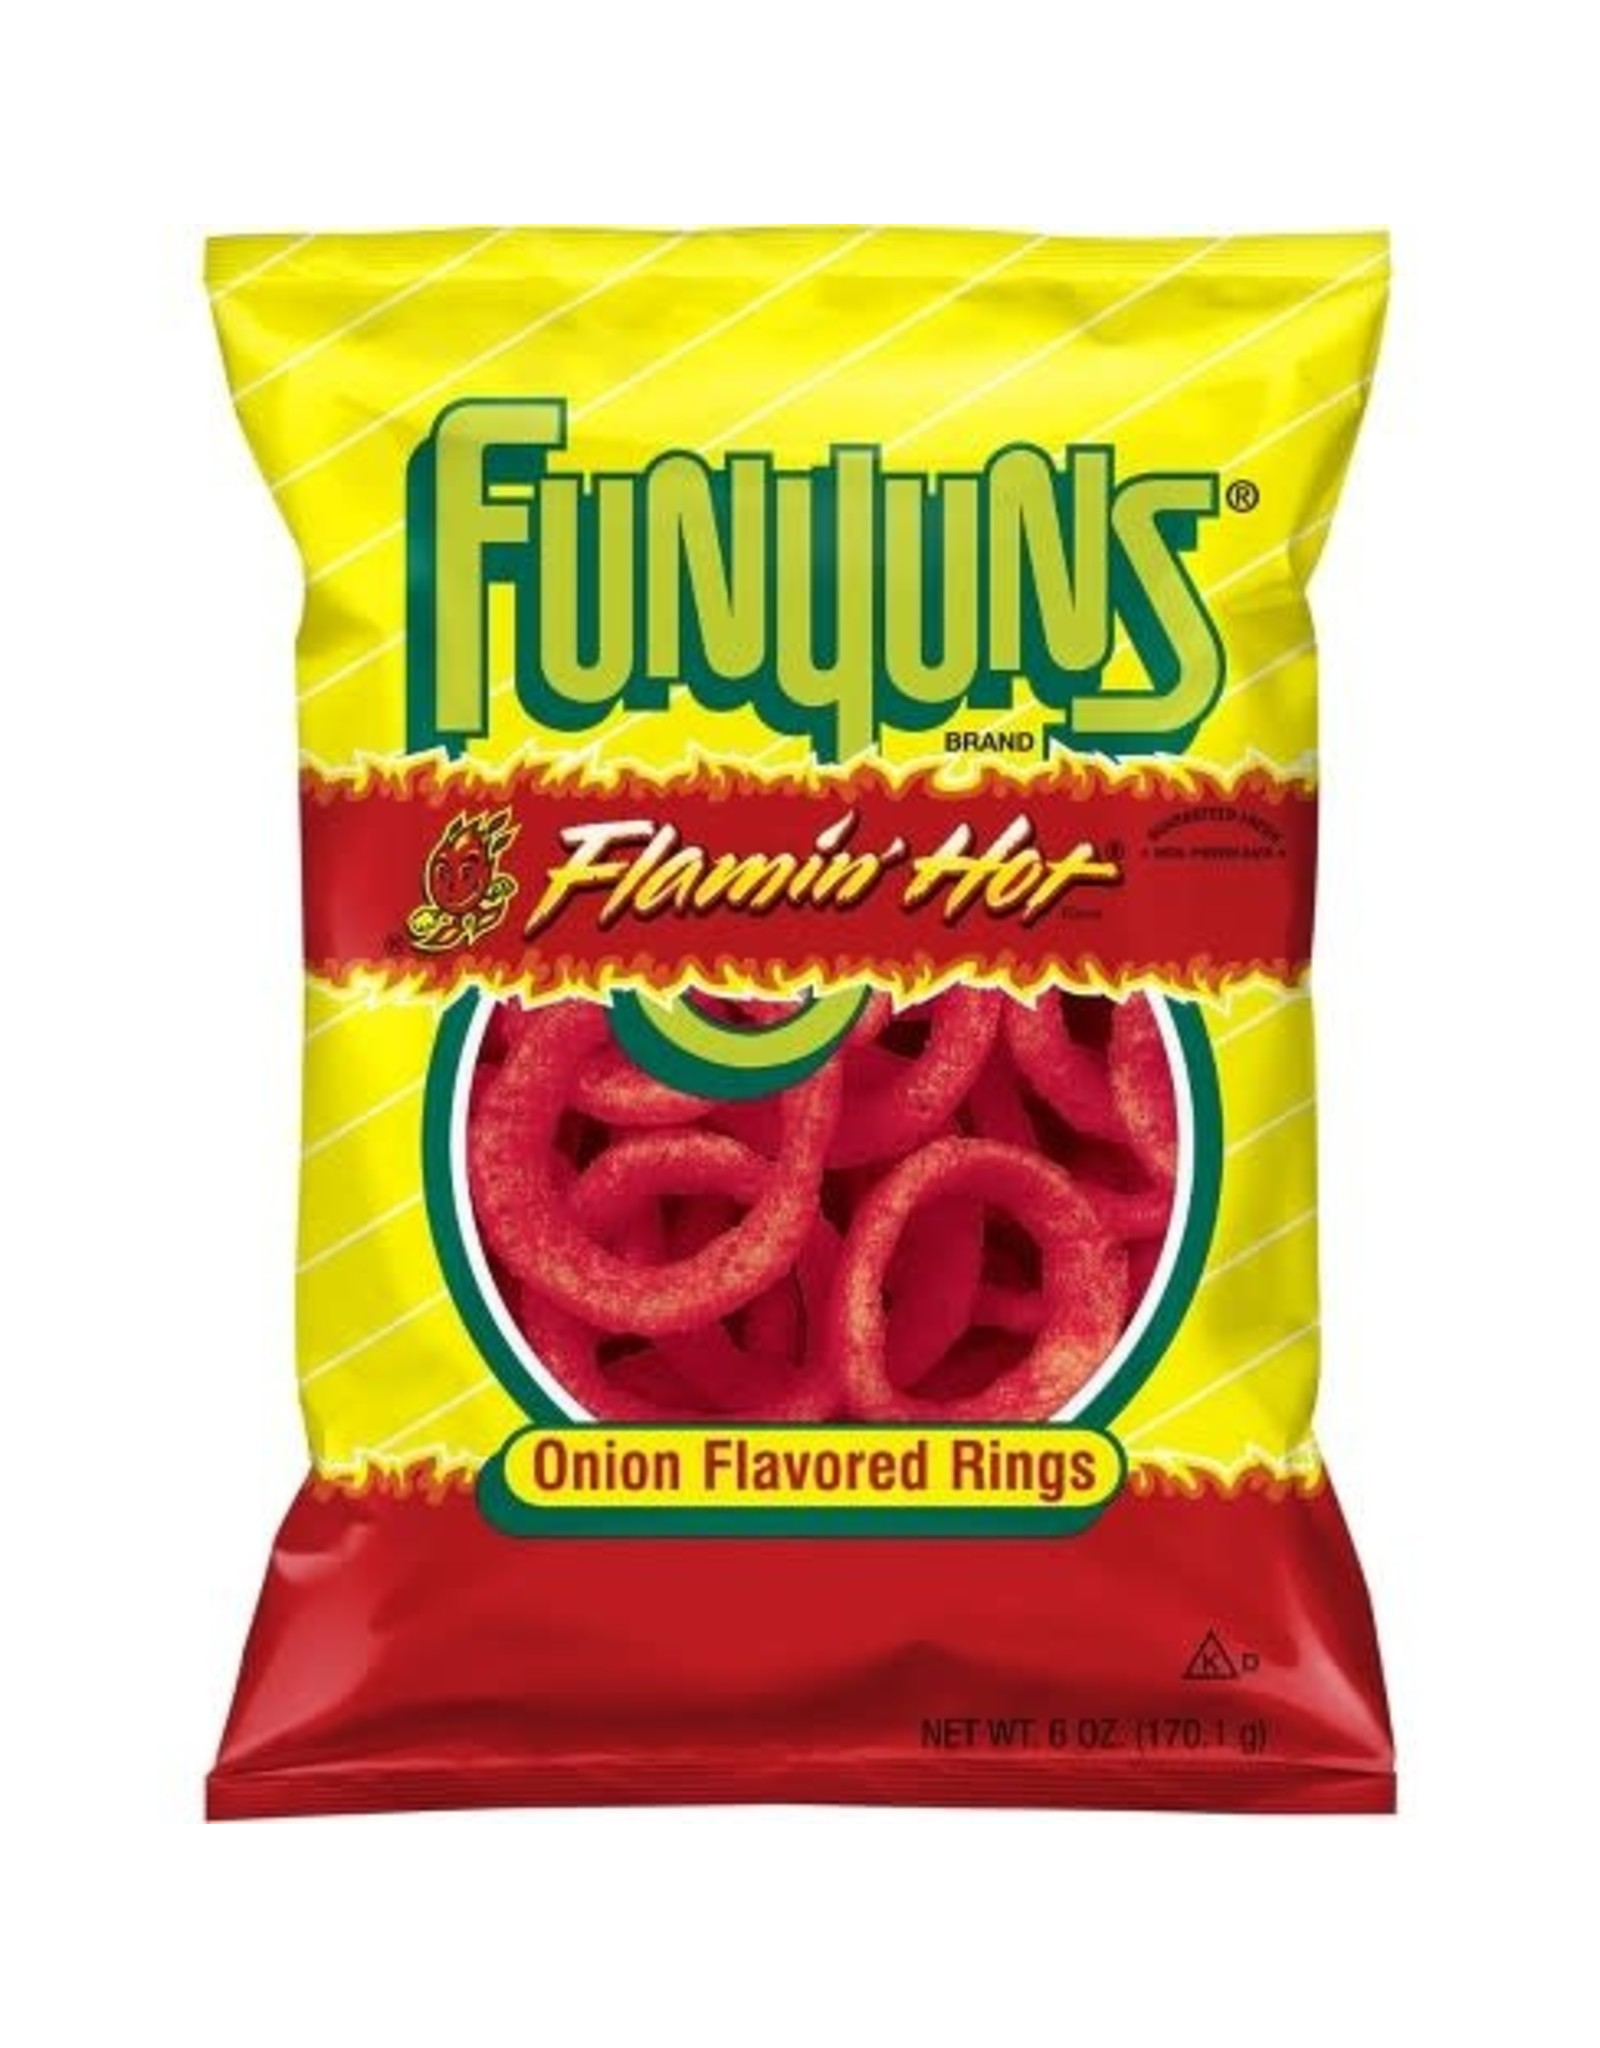 Funyuns Flamin' Hot - Onion Flavored Rings - Large - 163g